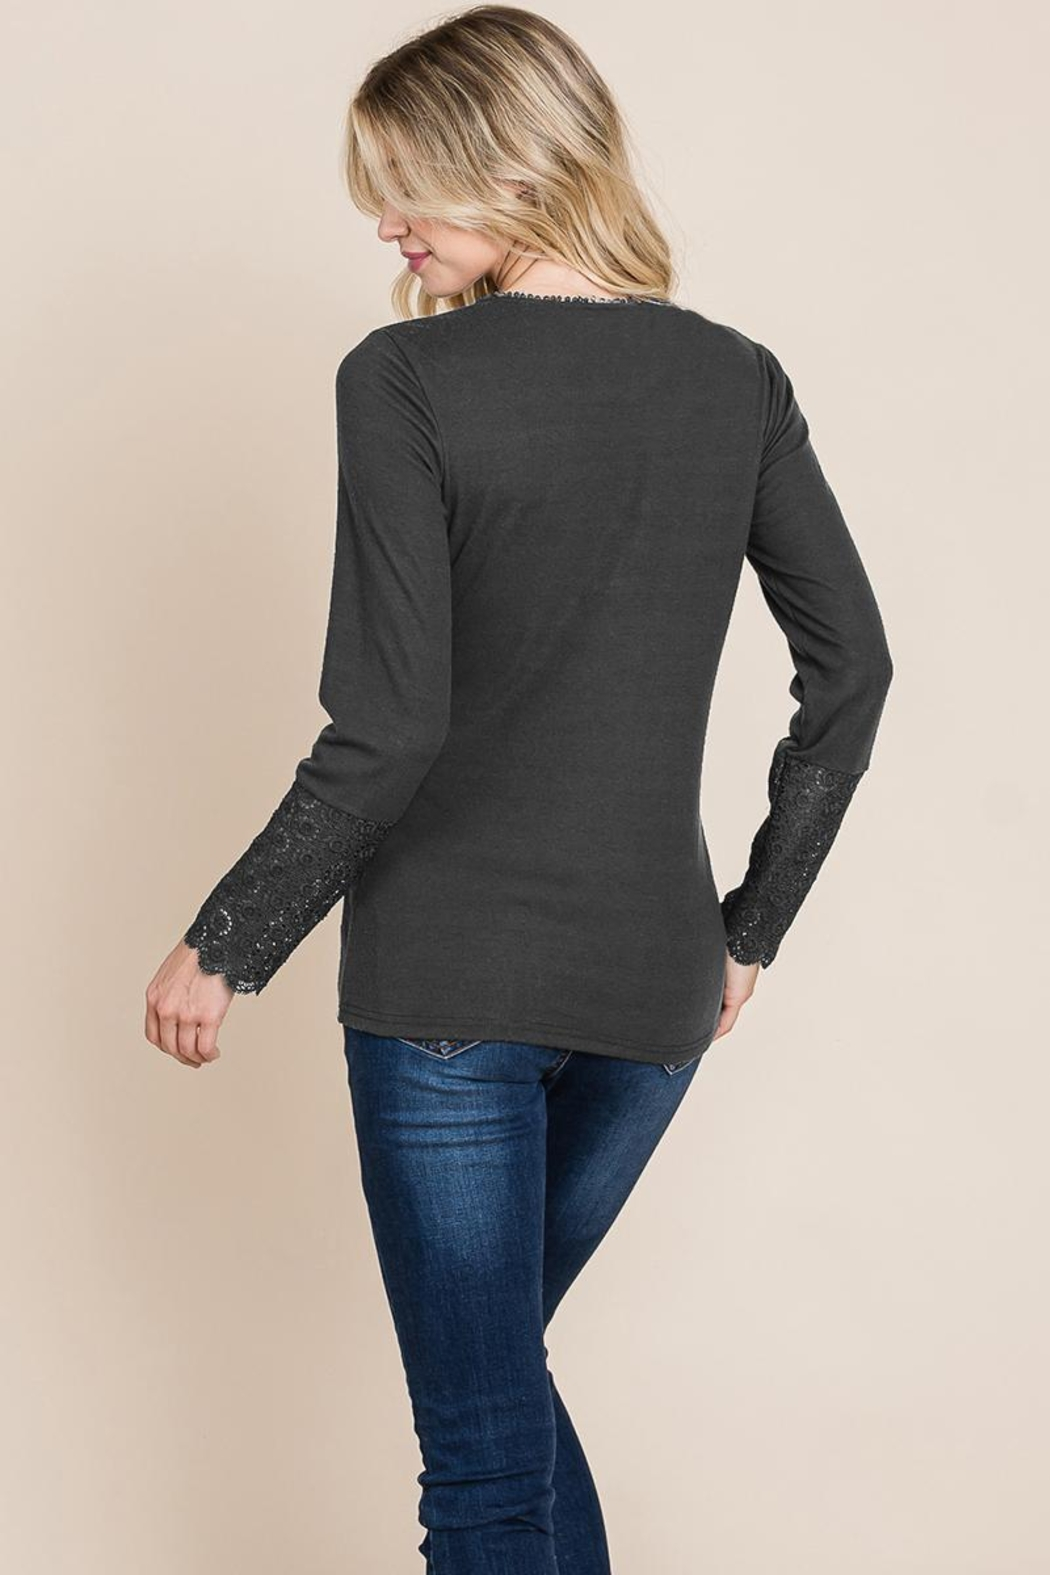 ROLYPOLY Apparel Scalloped Neck Button Placket Lace Sleeve Top - Side Cropped Image